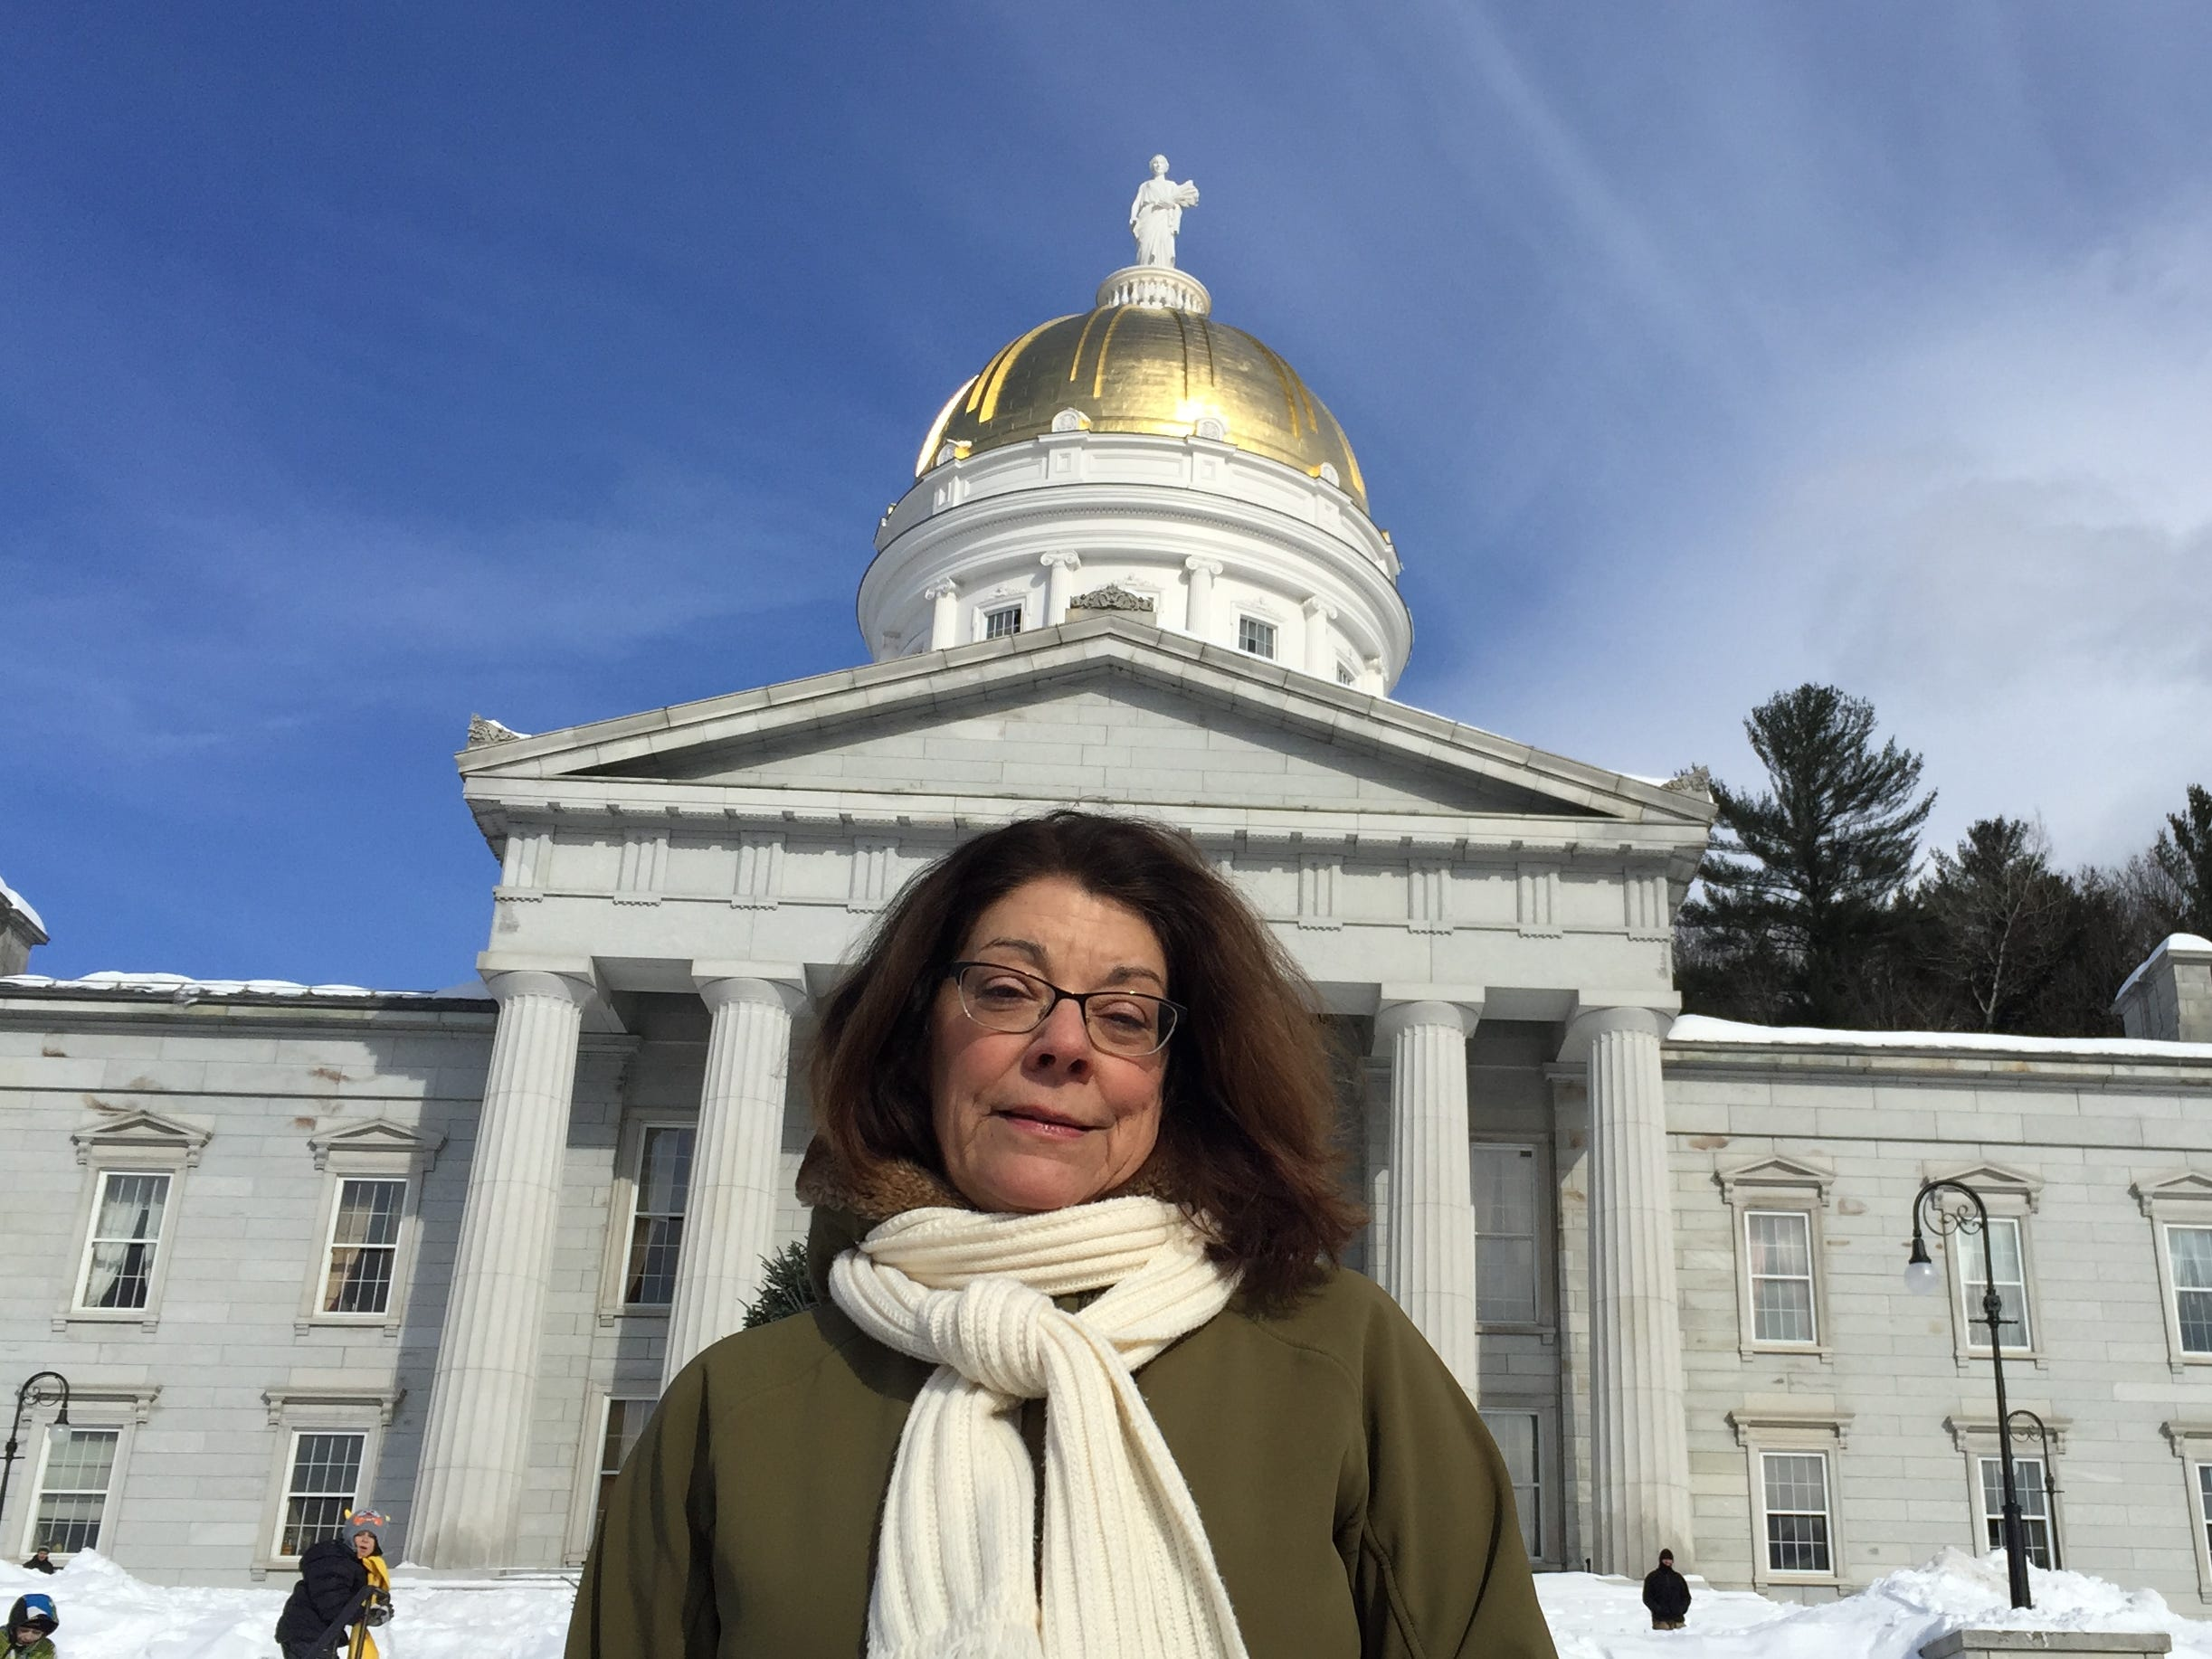 Mary Beerworth, executive director of Vermont Right to Life, takes a moment on the steps of the Vermont State House, before joining anti-abortion marchers inside on Jan. 26, 2019.